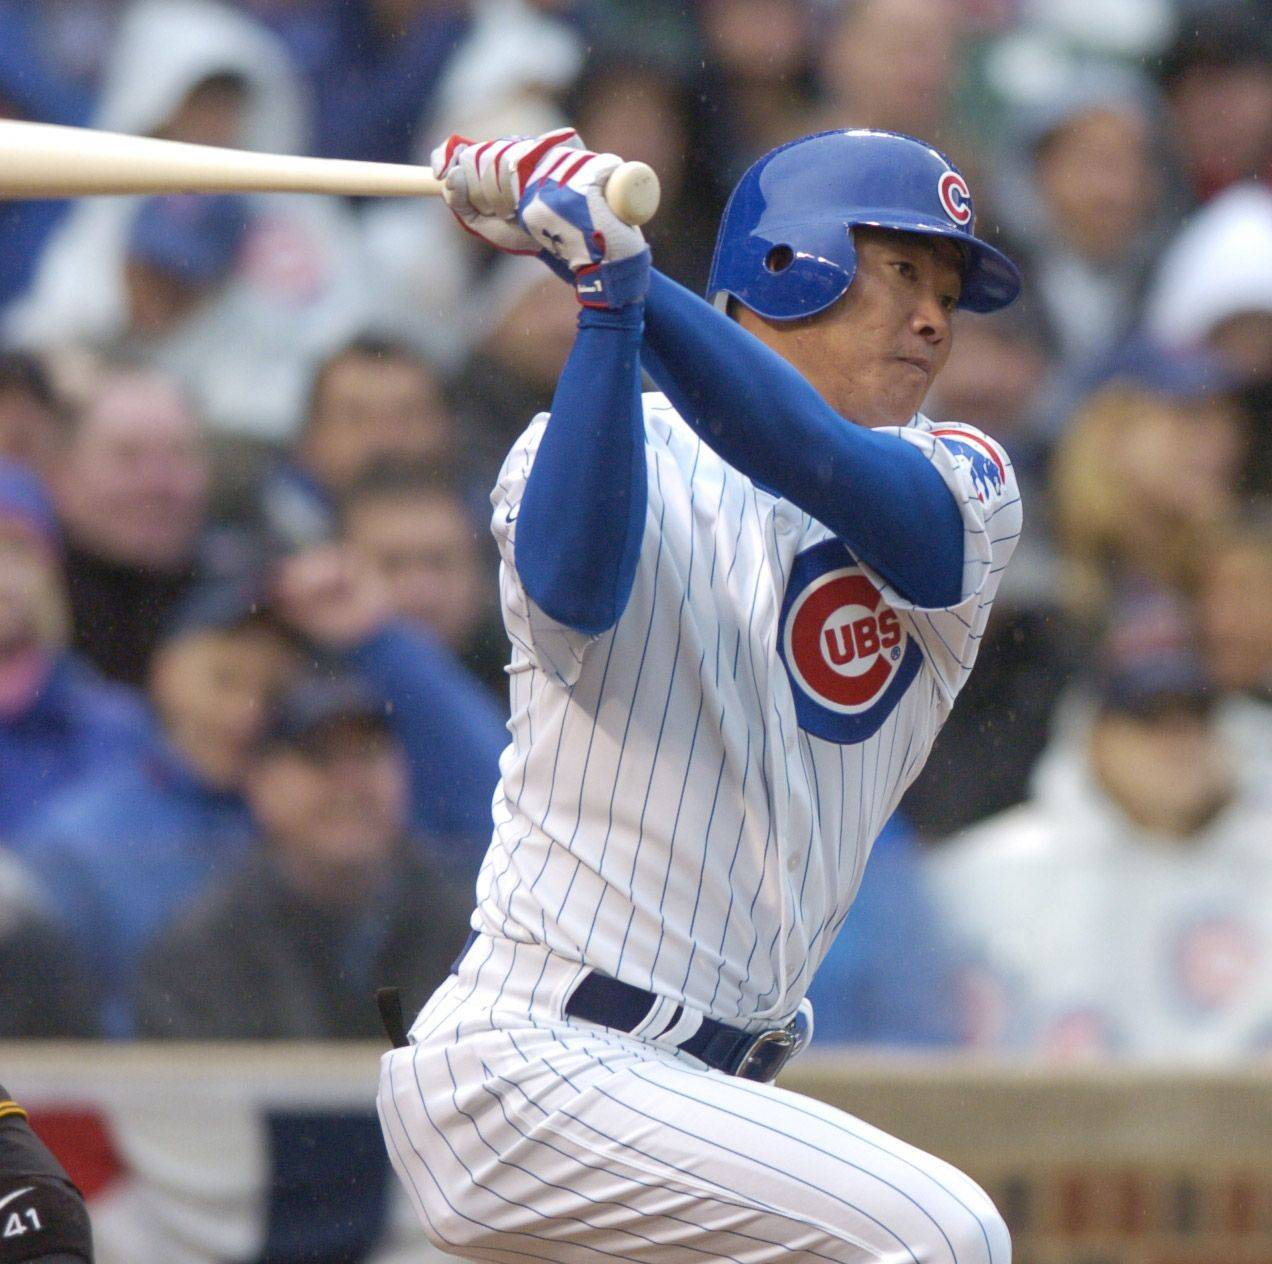 Kosuke Fukudome of the Cubs gets a base hit.